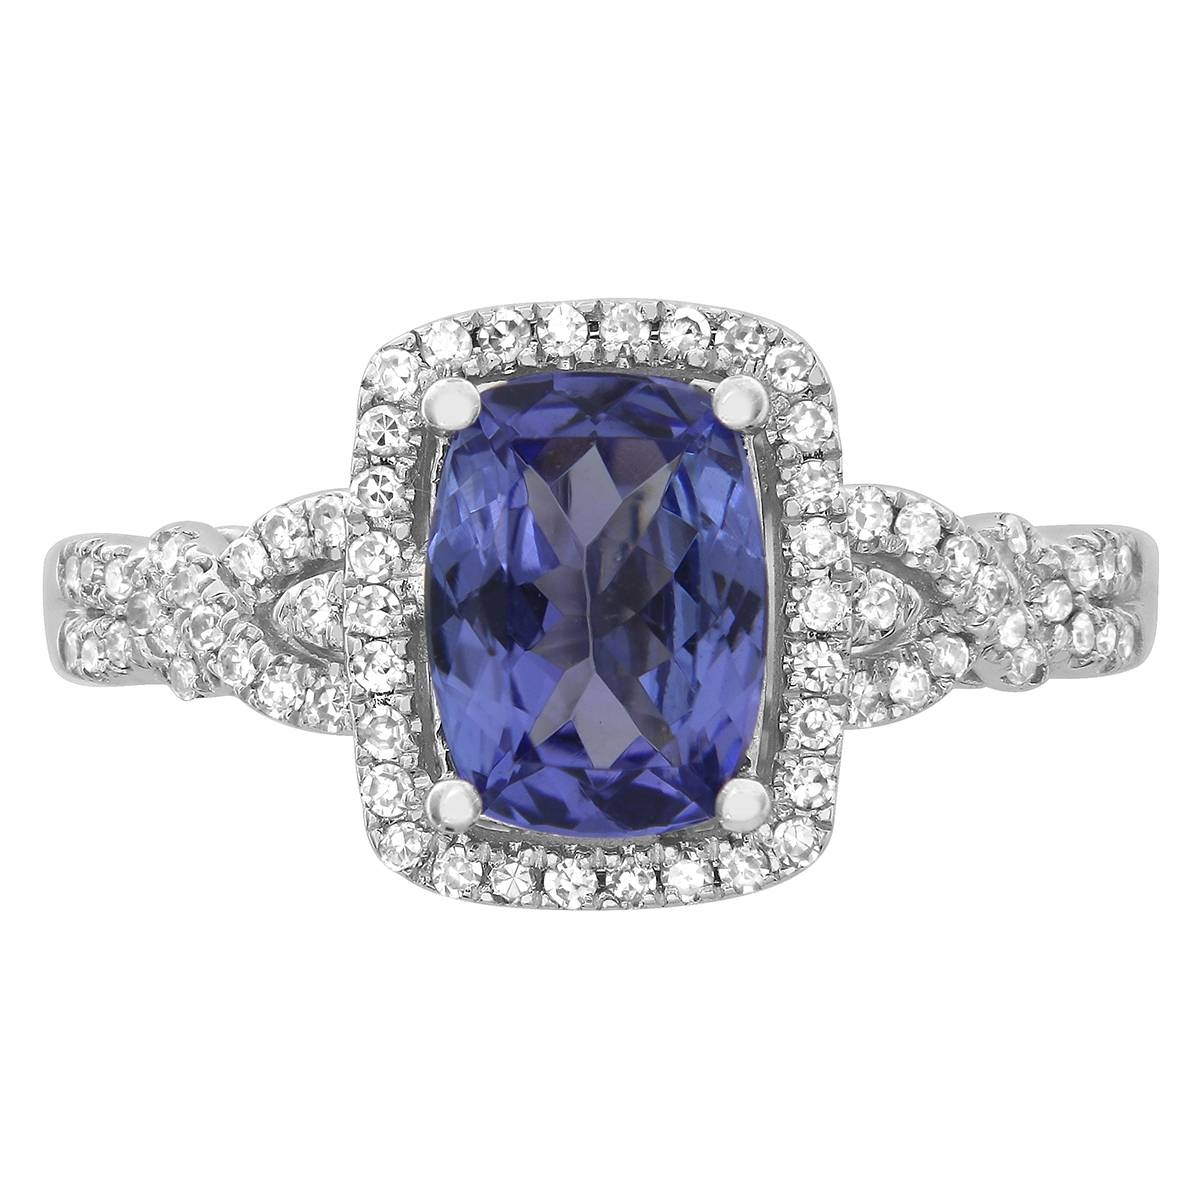 10k White Gold Cushion Cut Tanzanite And Diamond Engagement Ring Inside Tanzanite White Gold Engagement Rings (View 6 of 15)